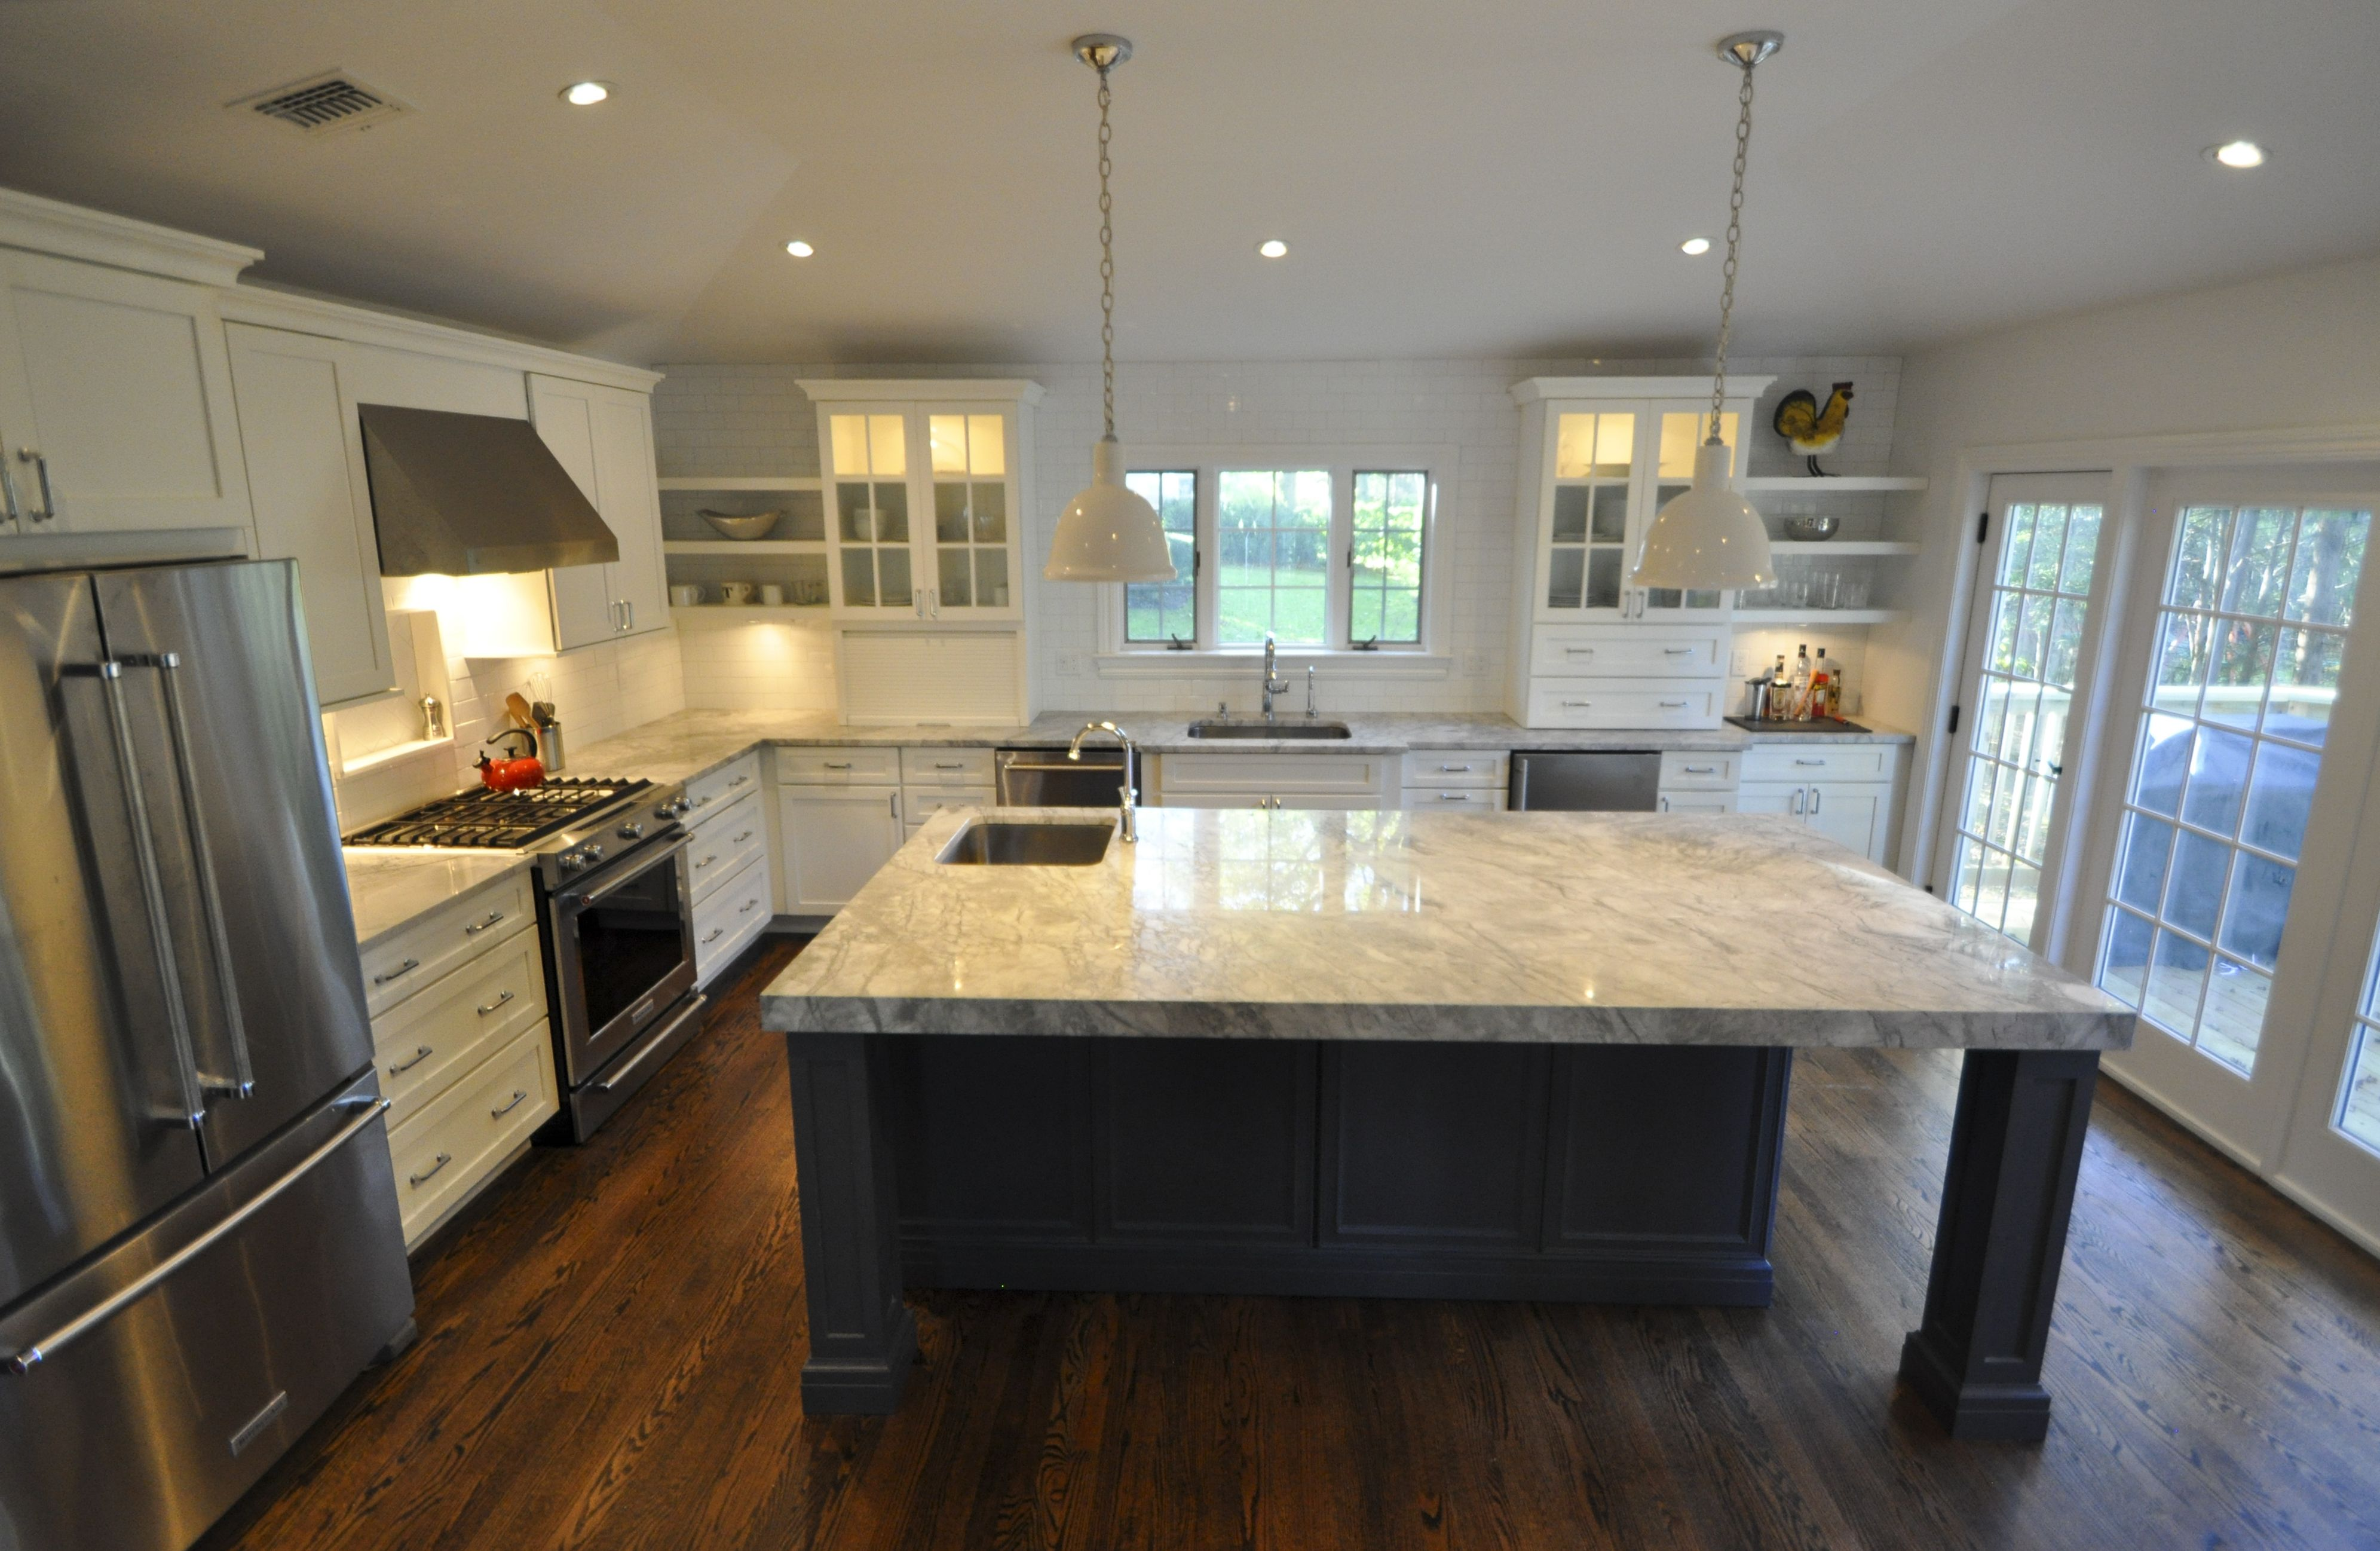 Highly Functional Layout Great For Entertaining With 2 Sinks Bar Area Beverage Fridge 3 Thick Kitchen Construction Luxury Kitchen Design Kitchen Remodel